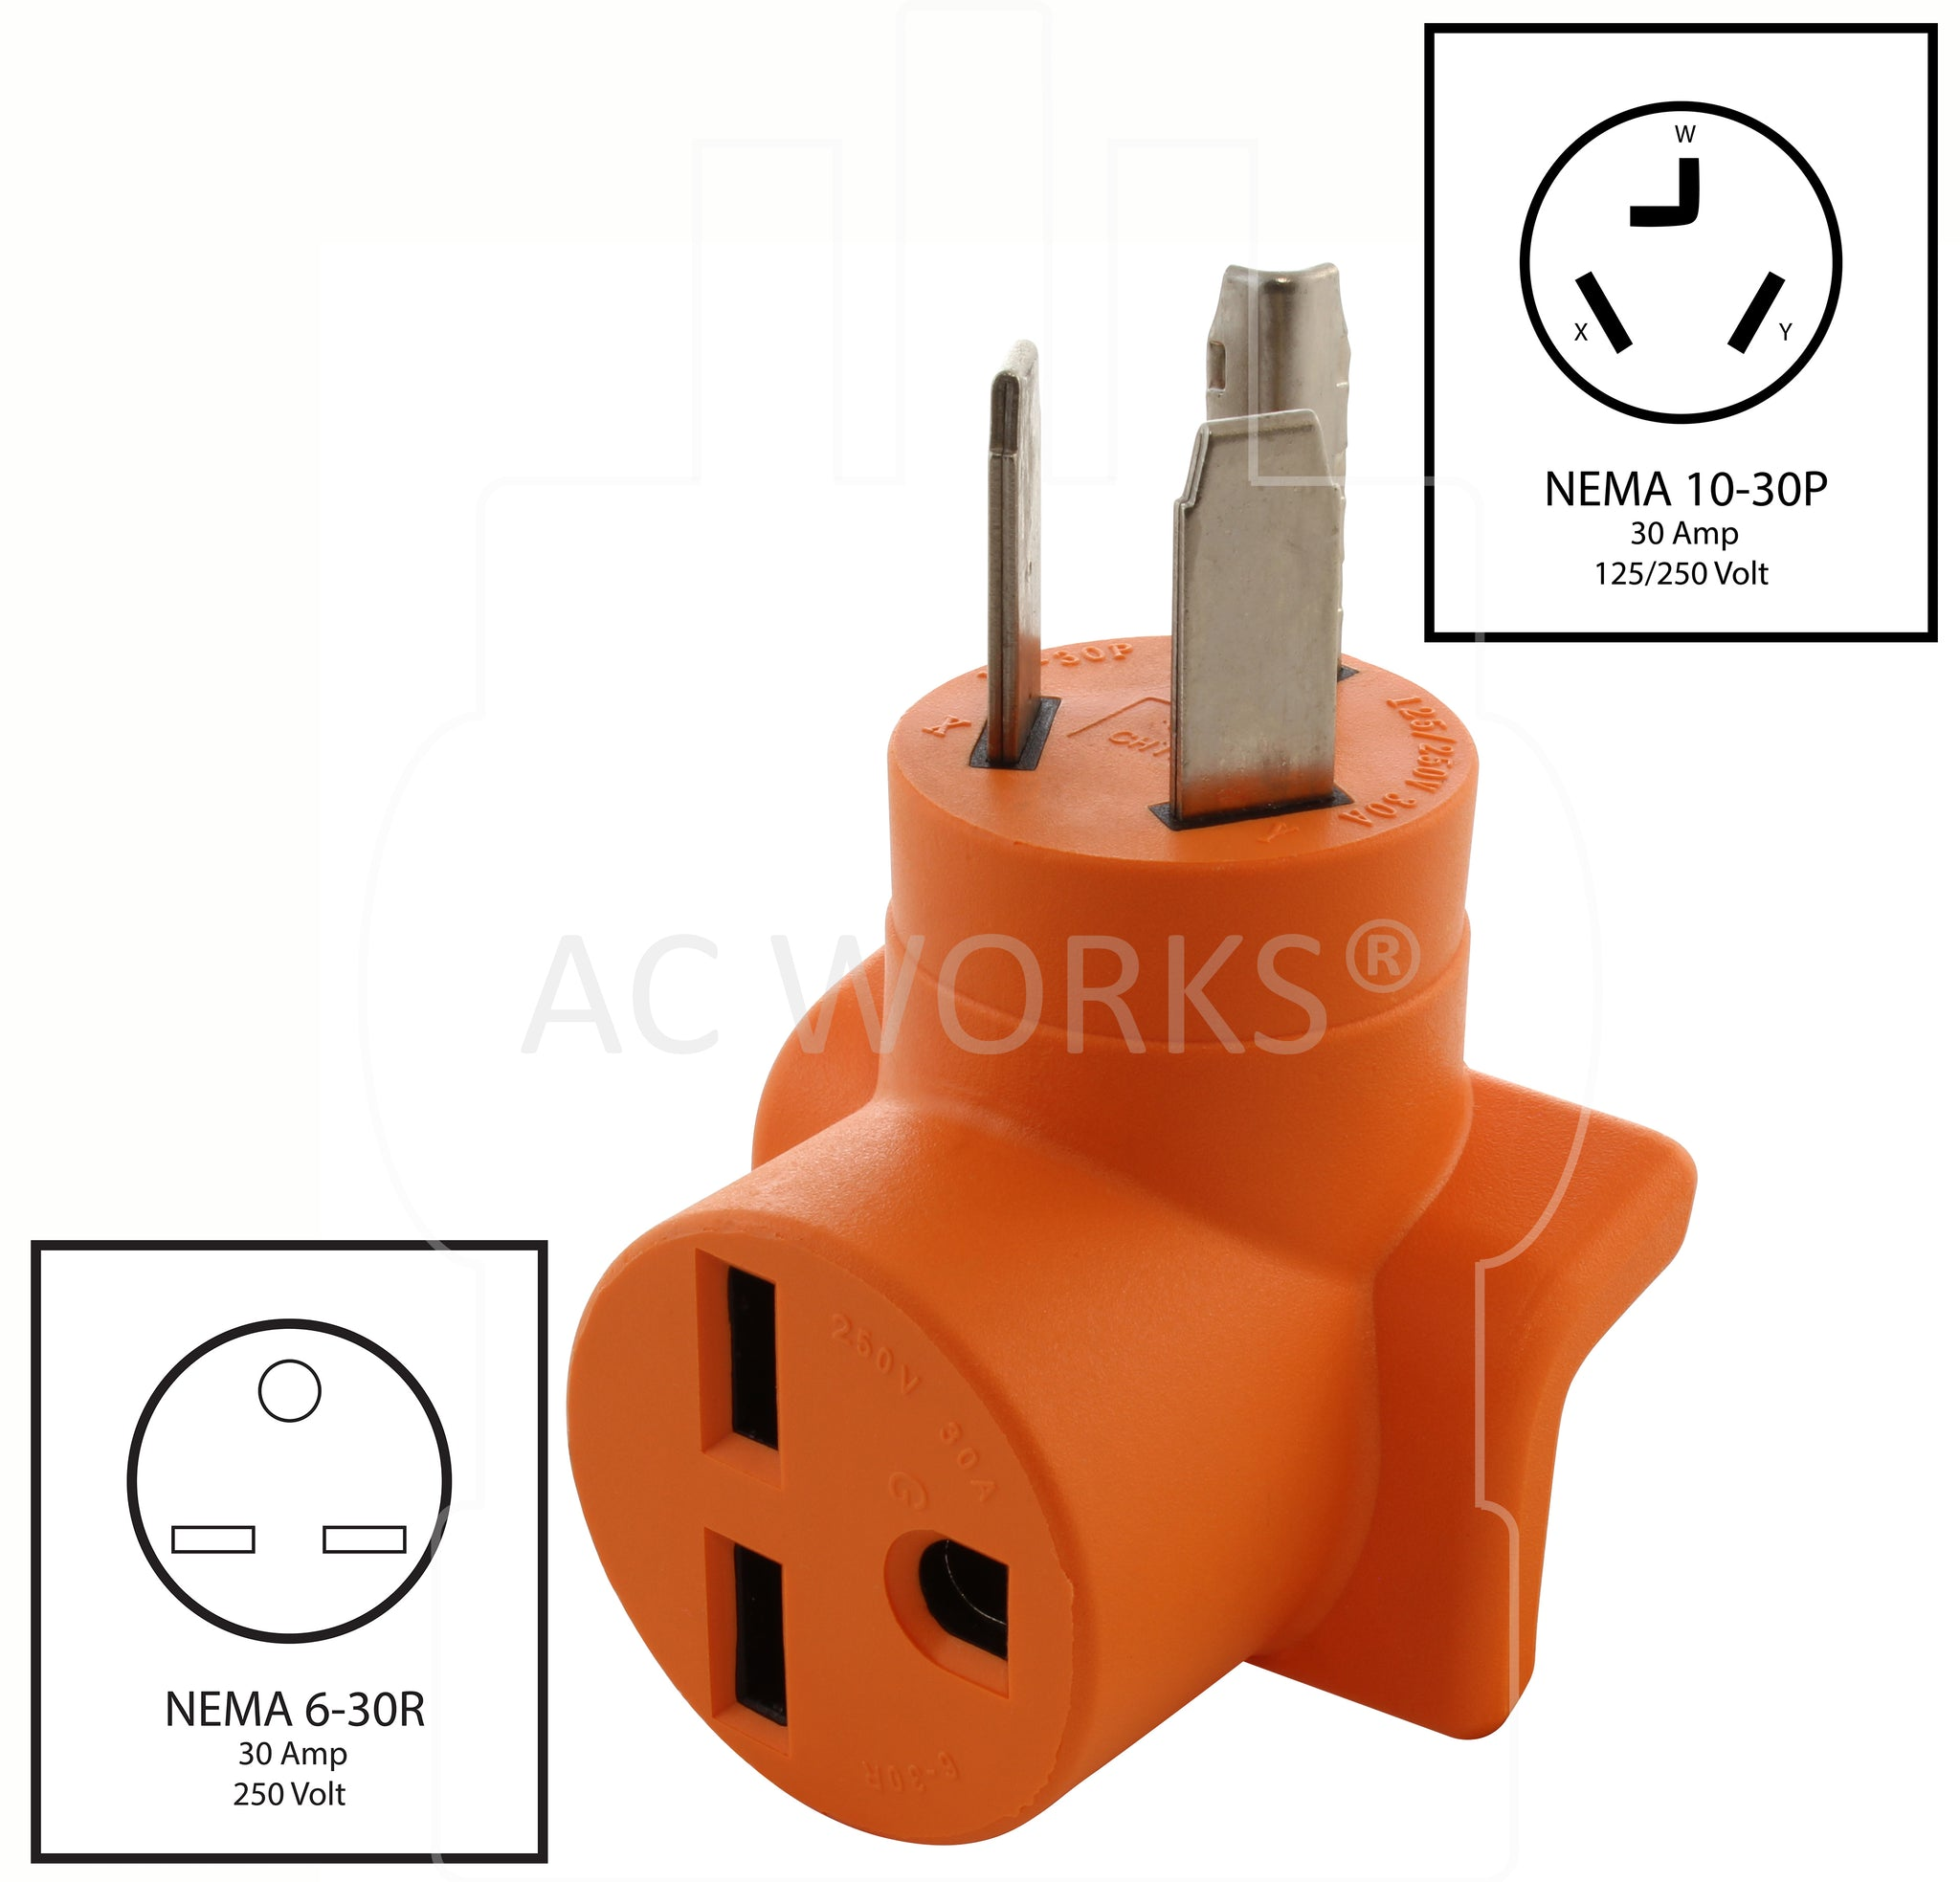 AC WORKS® 3-Prong Dryer 10-30P Plug to 6-30R 3-Prong 30A